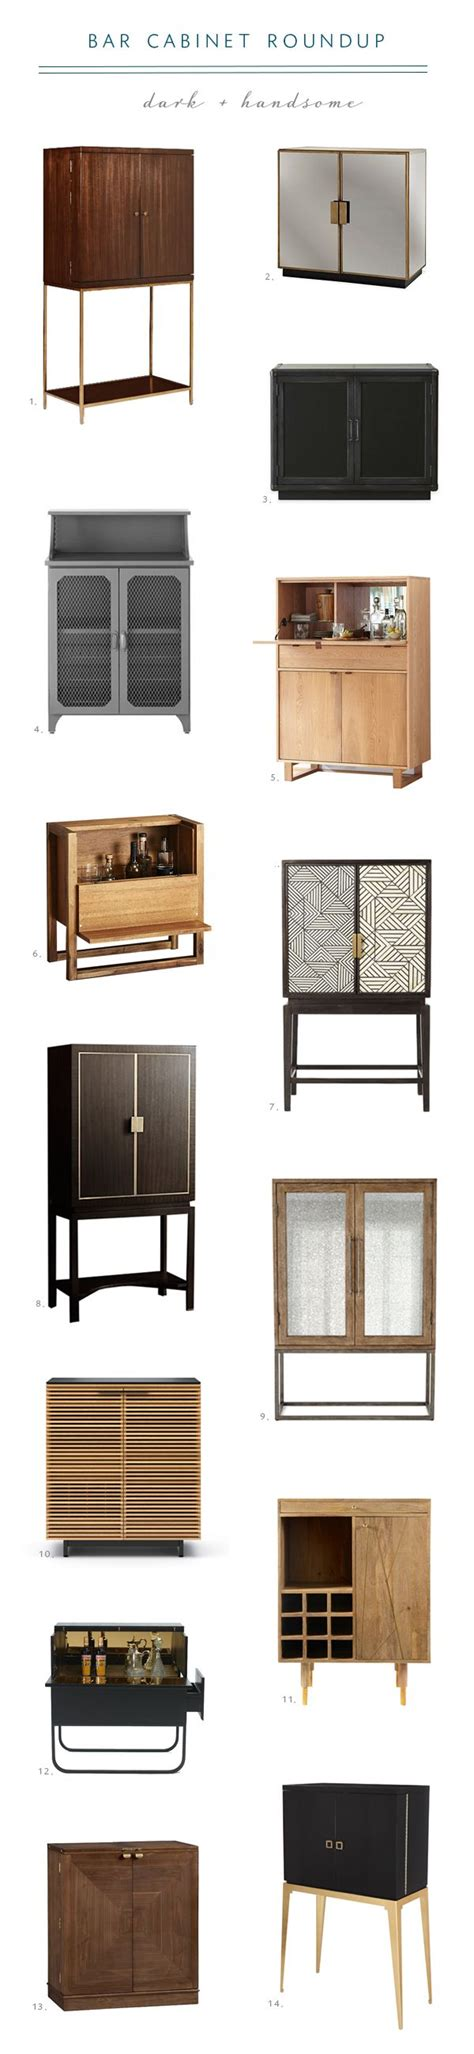 25 best ideas about bar cabinets on bar